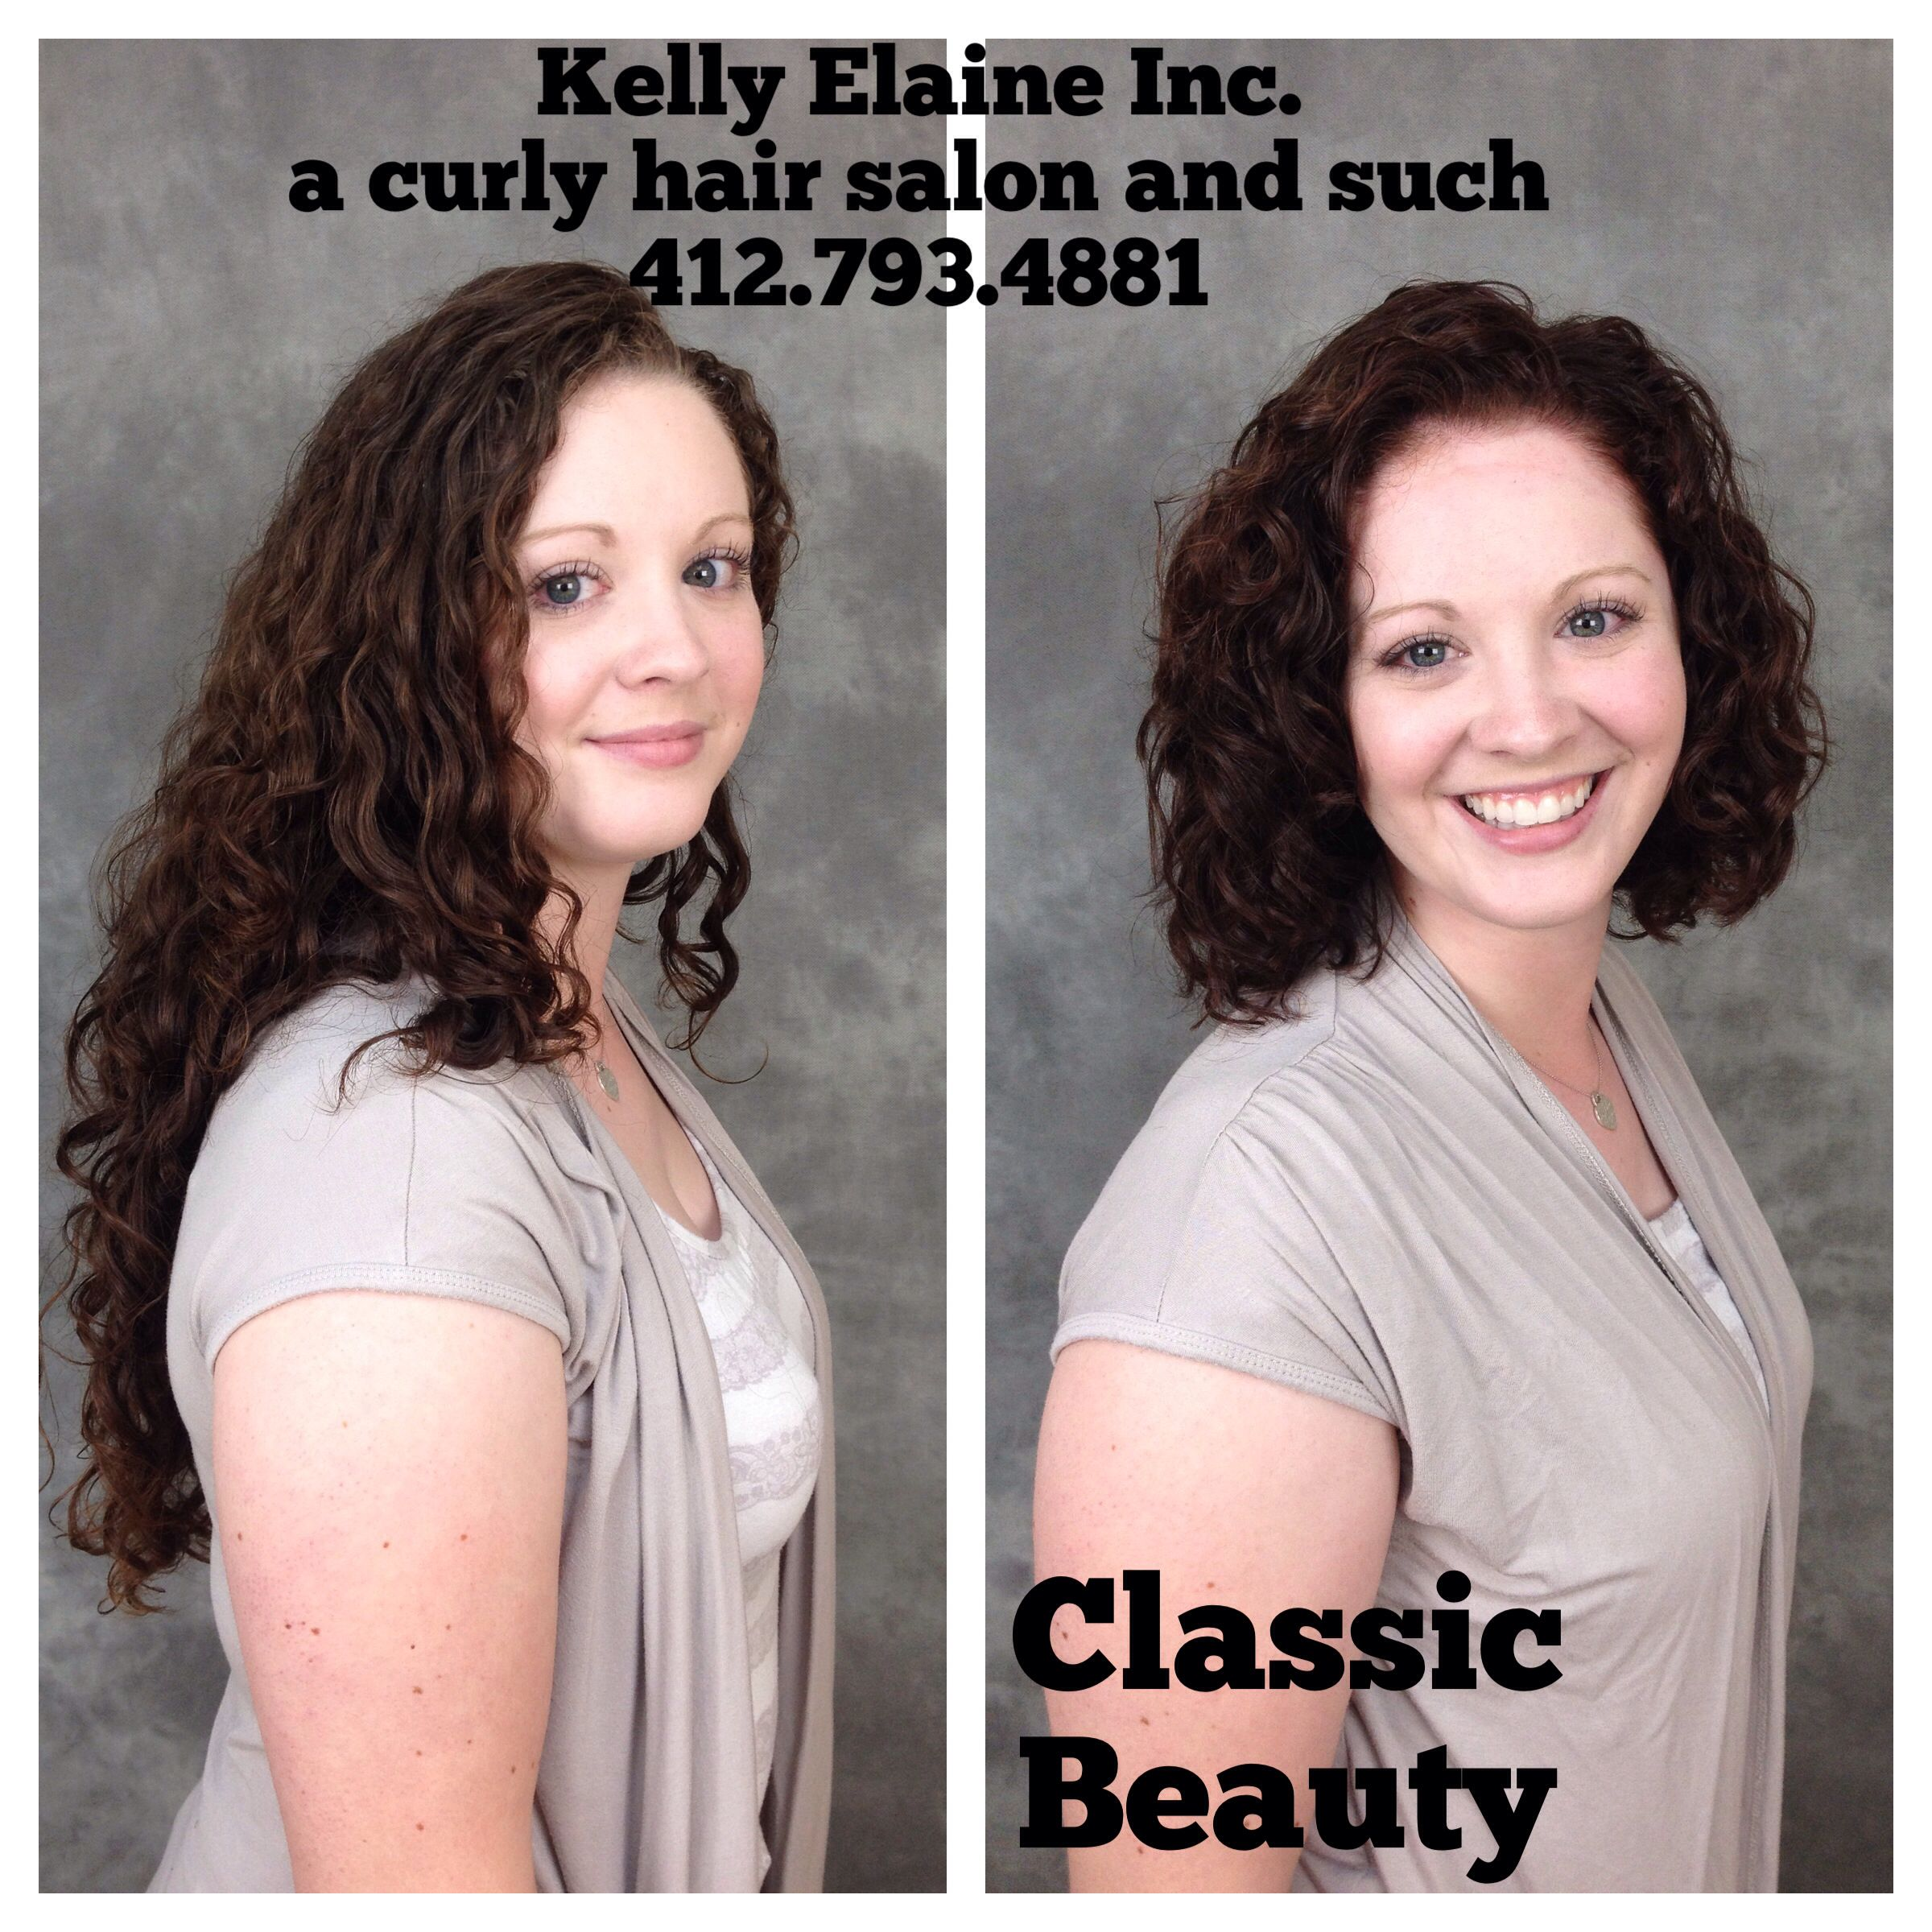 Medium Curly Hair Makeover. Kelly Elaine Inc. a curly hair